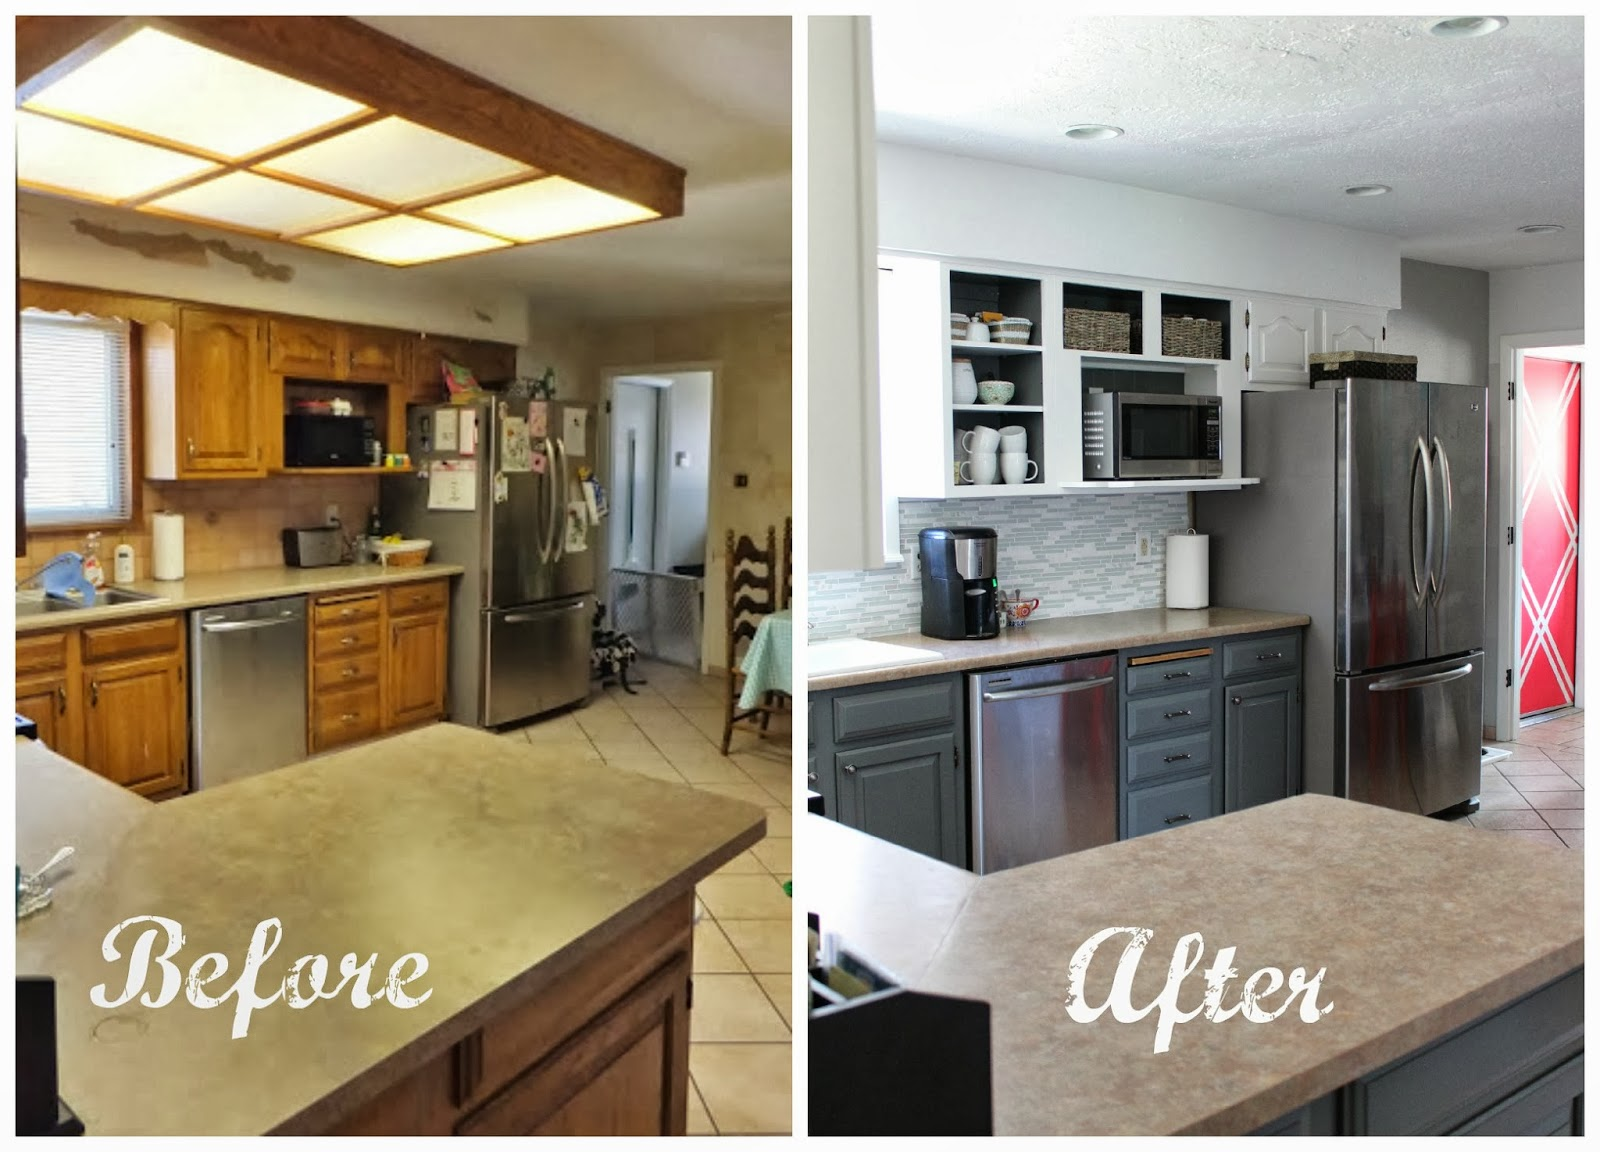 Kitchen Makeovers On A Budget Before And After Awesome Remodelaholic  Grey And White Kitchen Makeover 2017